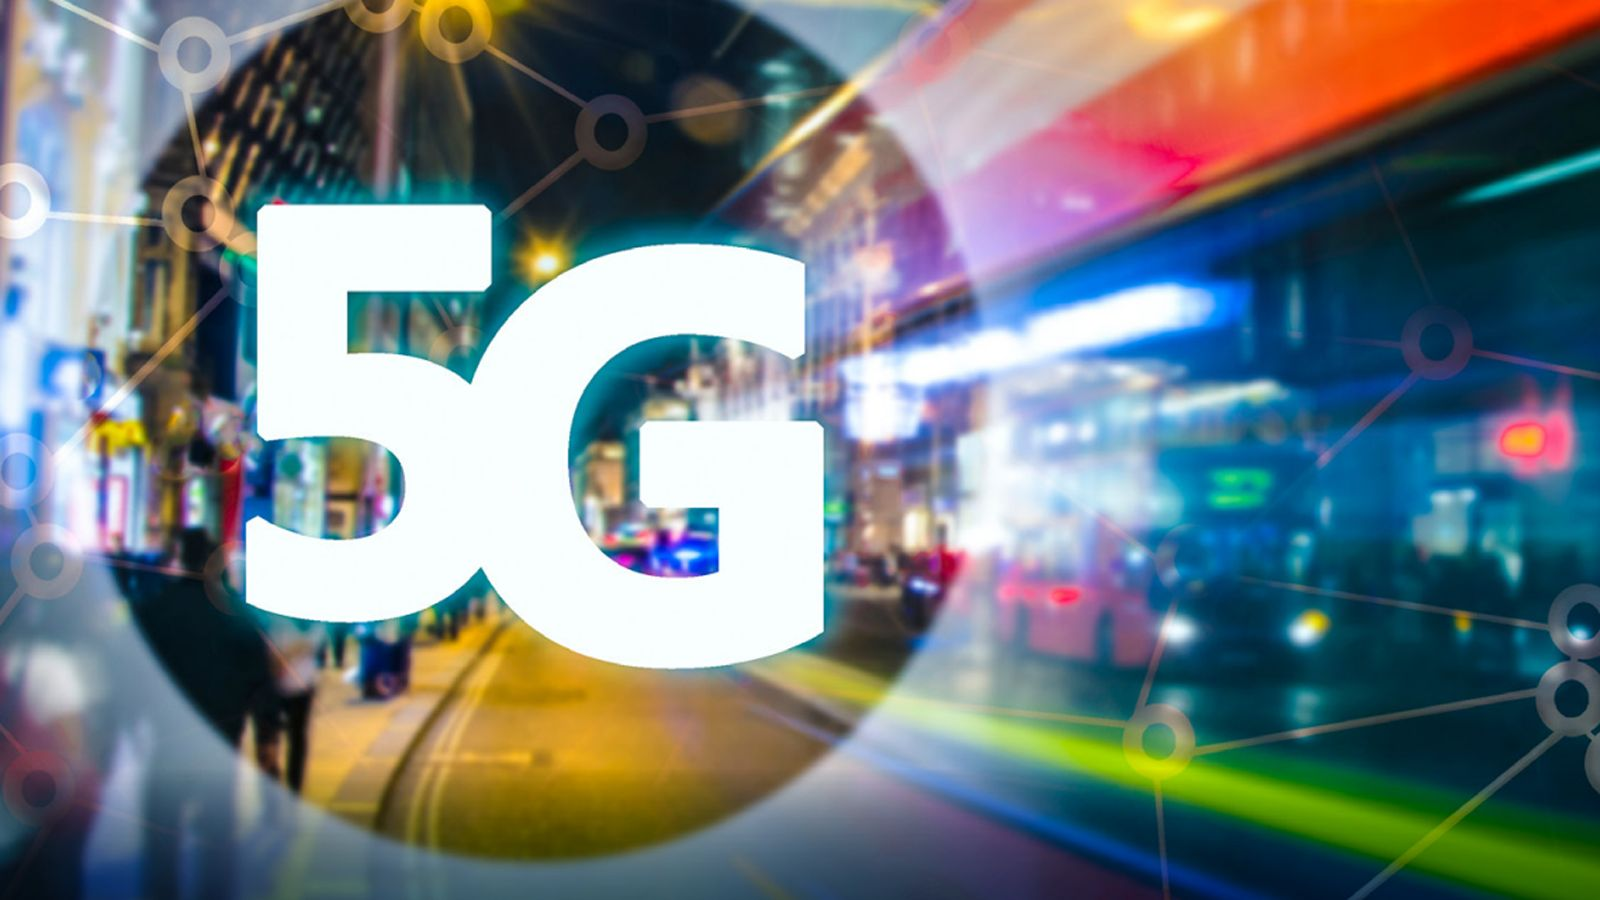 Simulation for 5G New Radio System Design and Verification